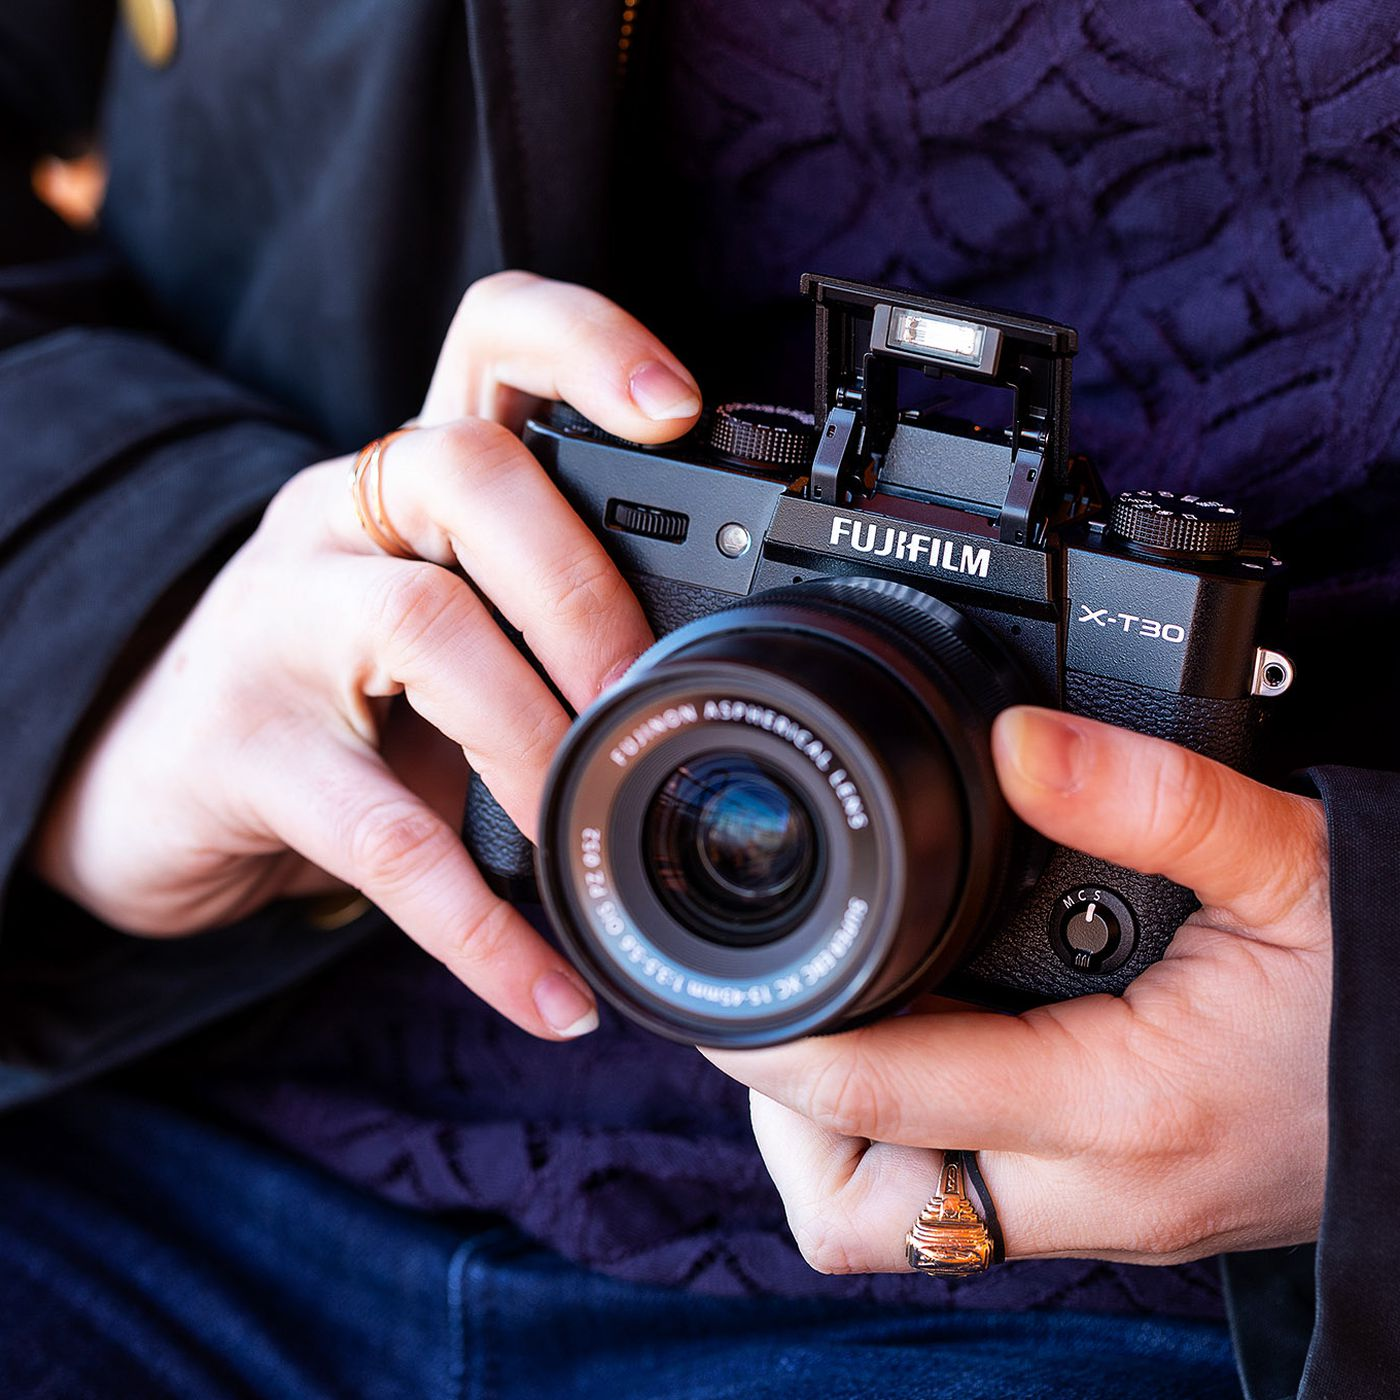 Fujifilm X-T30 review: a little wonder of a camera - The Verge